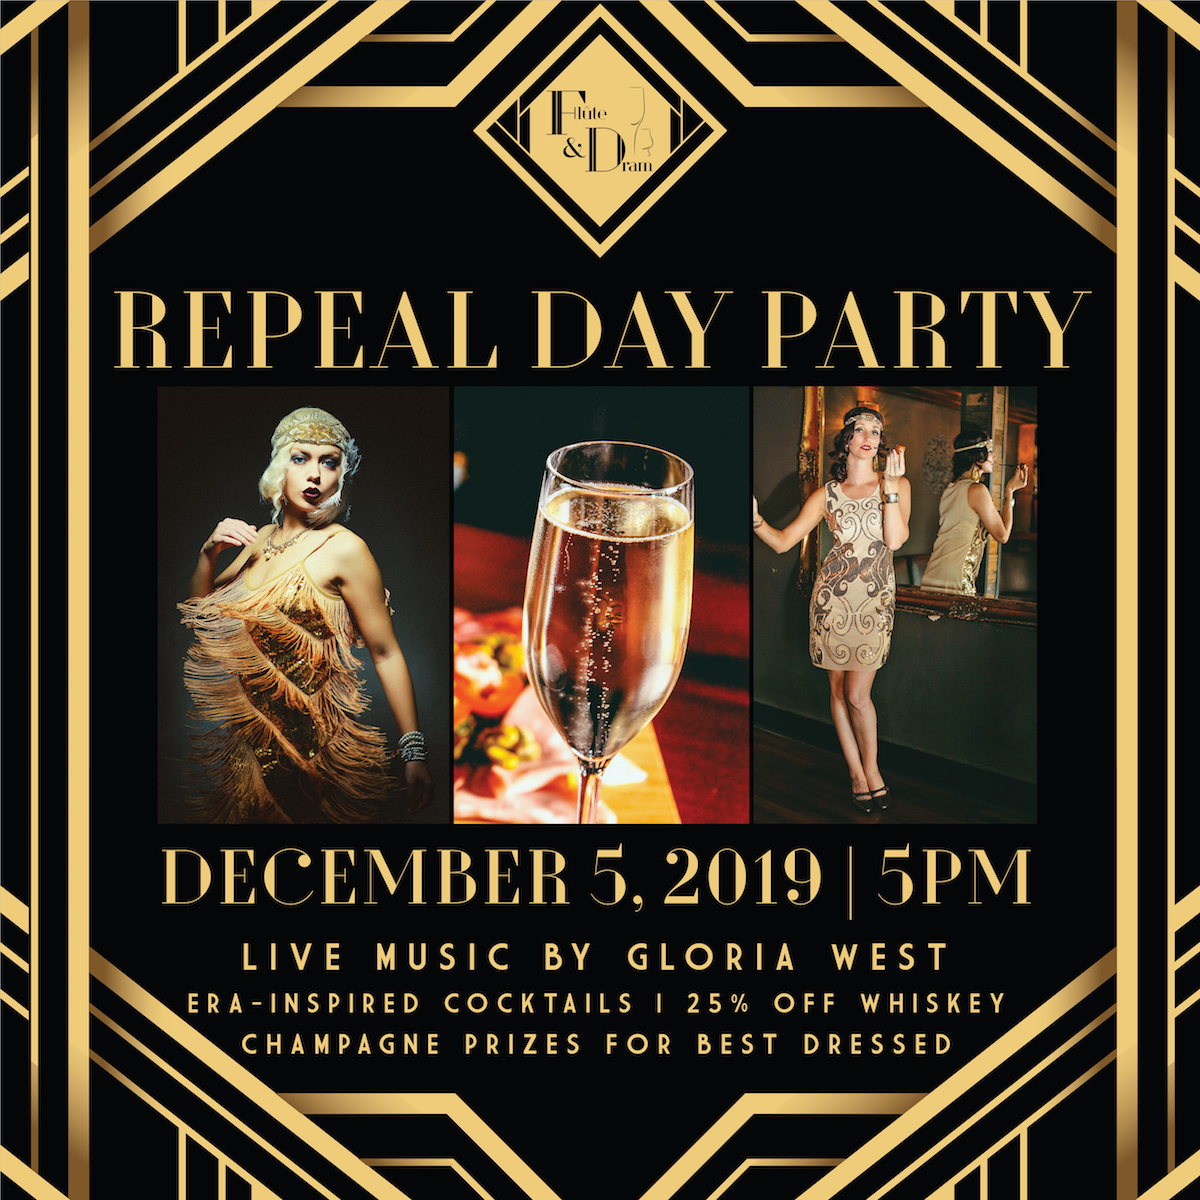 Break out the Fringe and Fedoras, Flute & Dram is Celebrating Repeal Day in Style